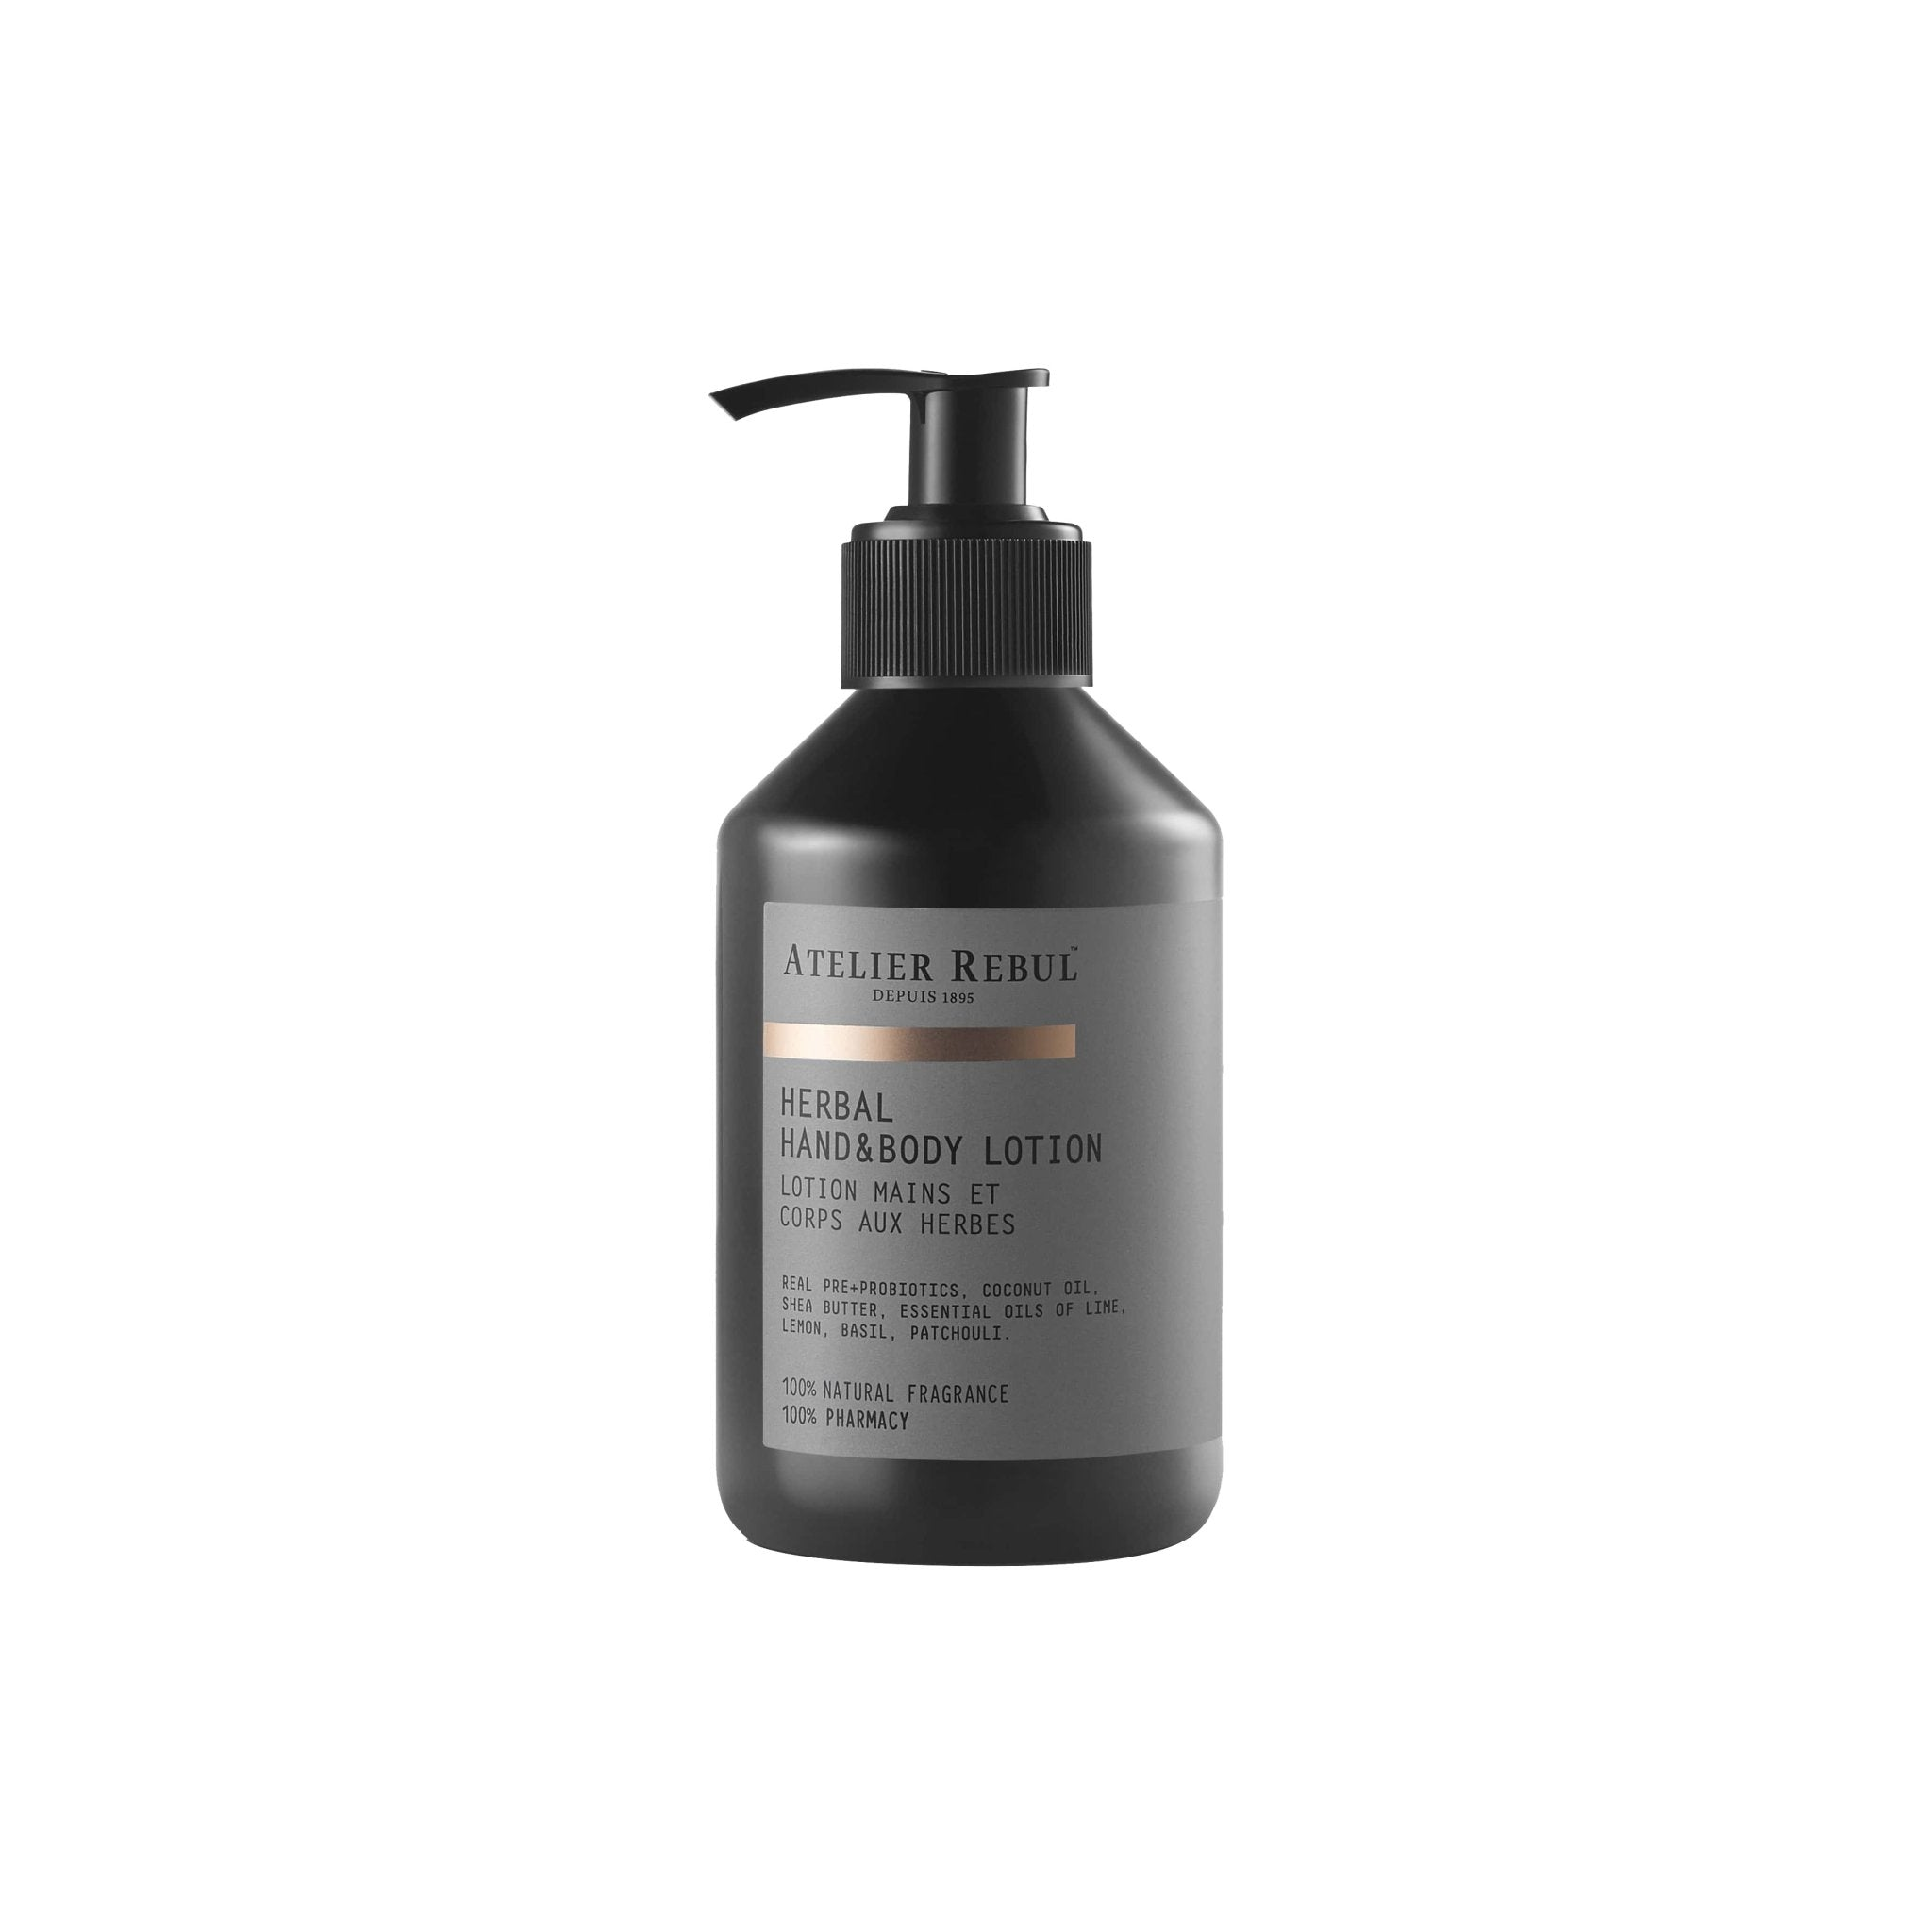 Herbal Hand & Body Lotion 250ml - Atelier Rebul